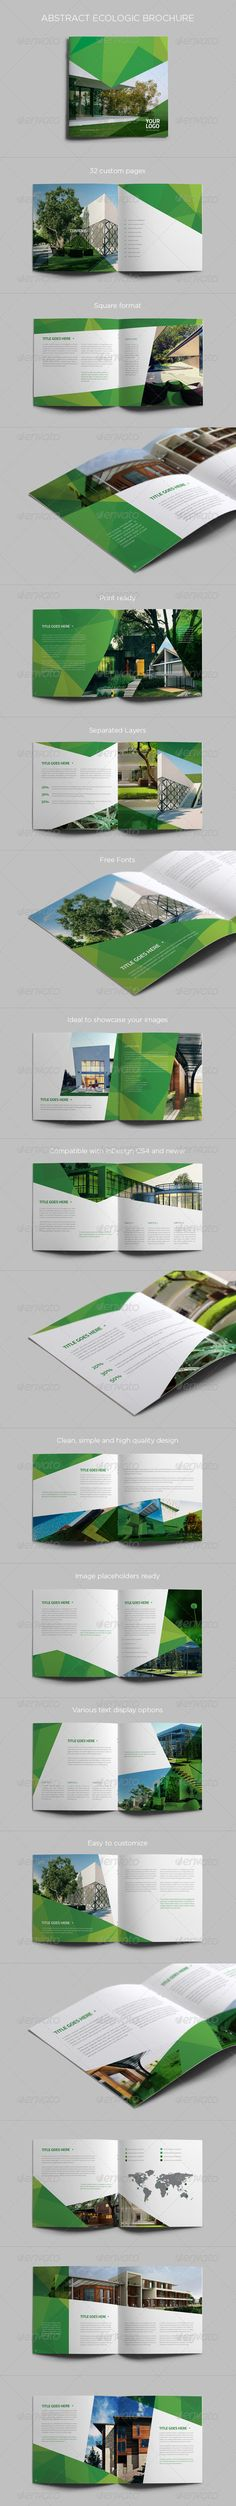 Abstract Ecologic Brochure — InDesign INDD #ecologic #easy • Available here → https://graphicriver.net/item/abstract-ecologic-brochure/7765796?ref=pxcr